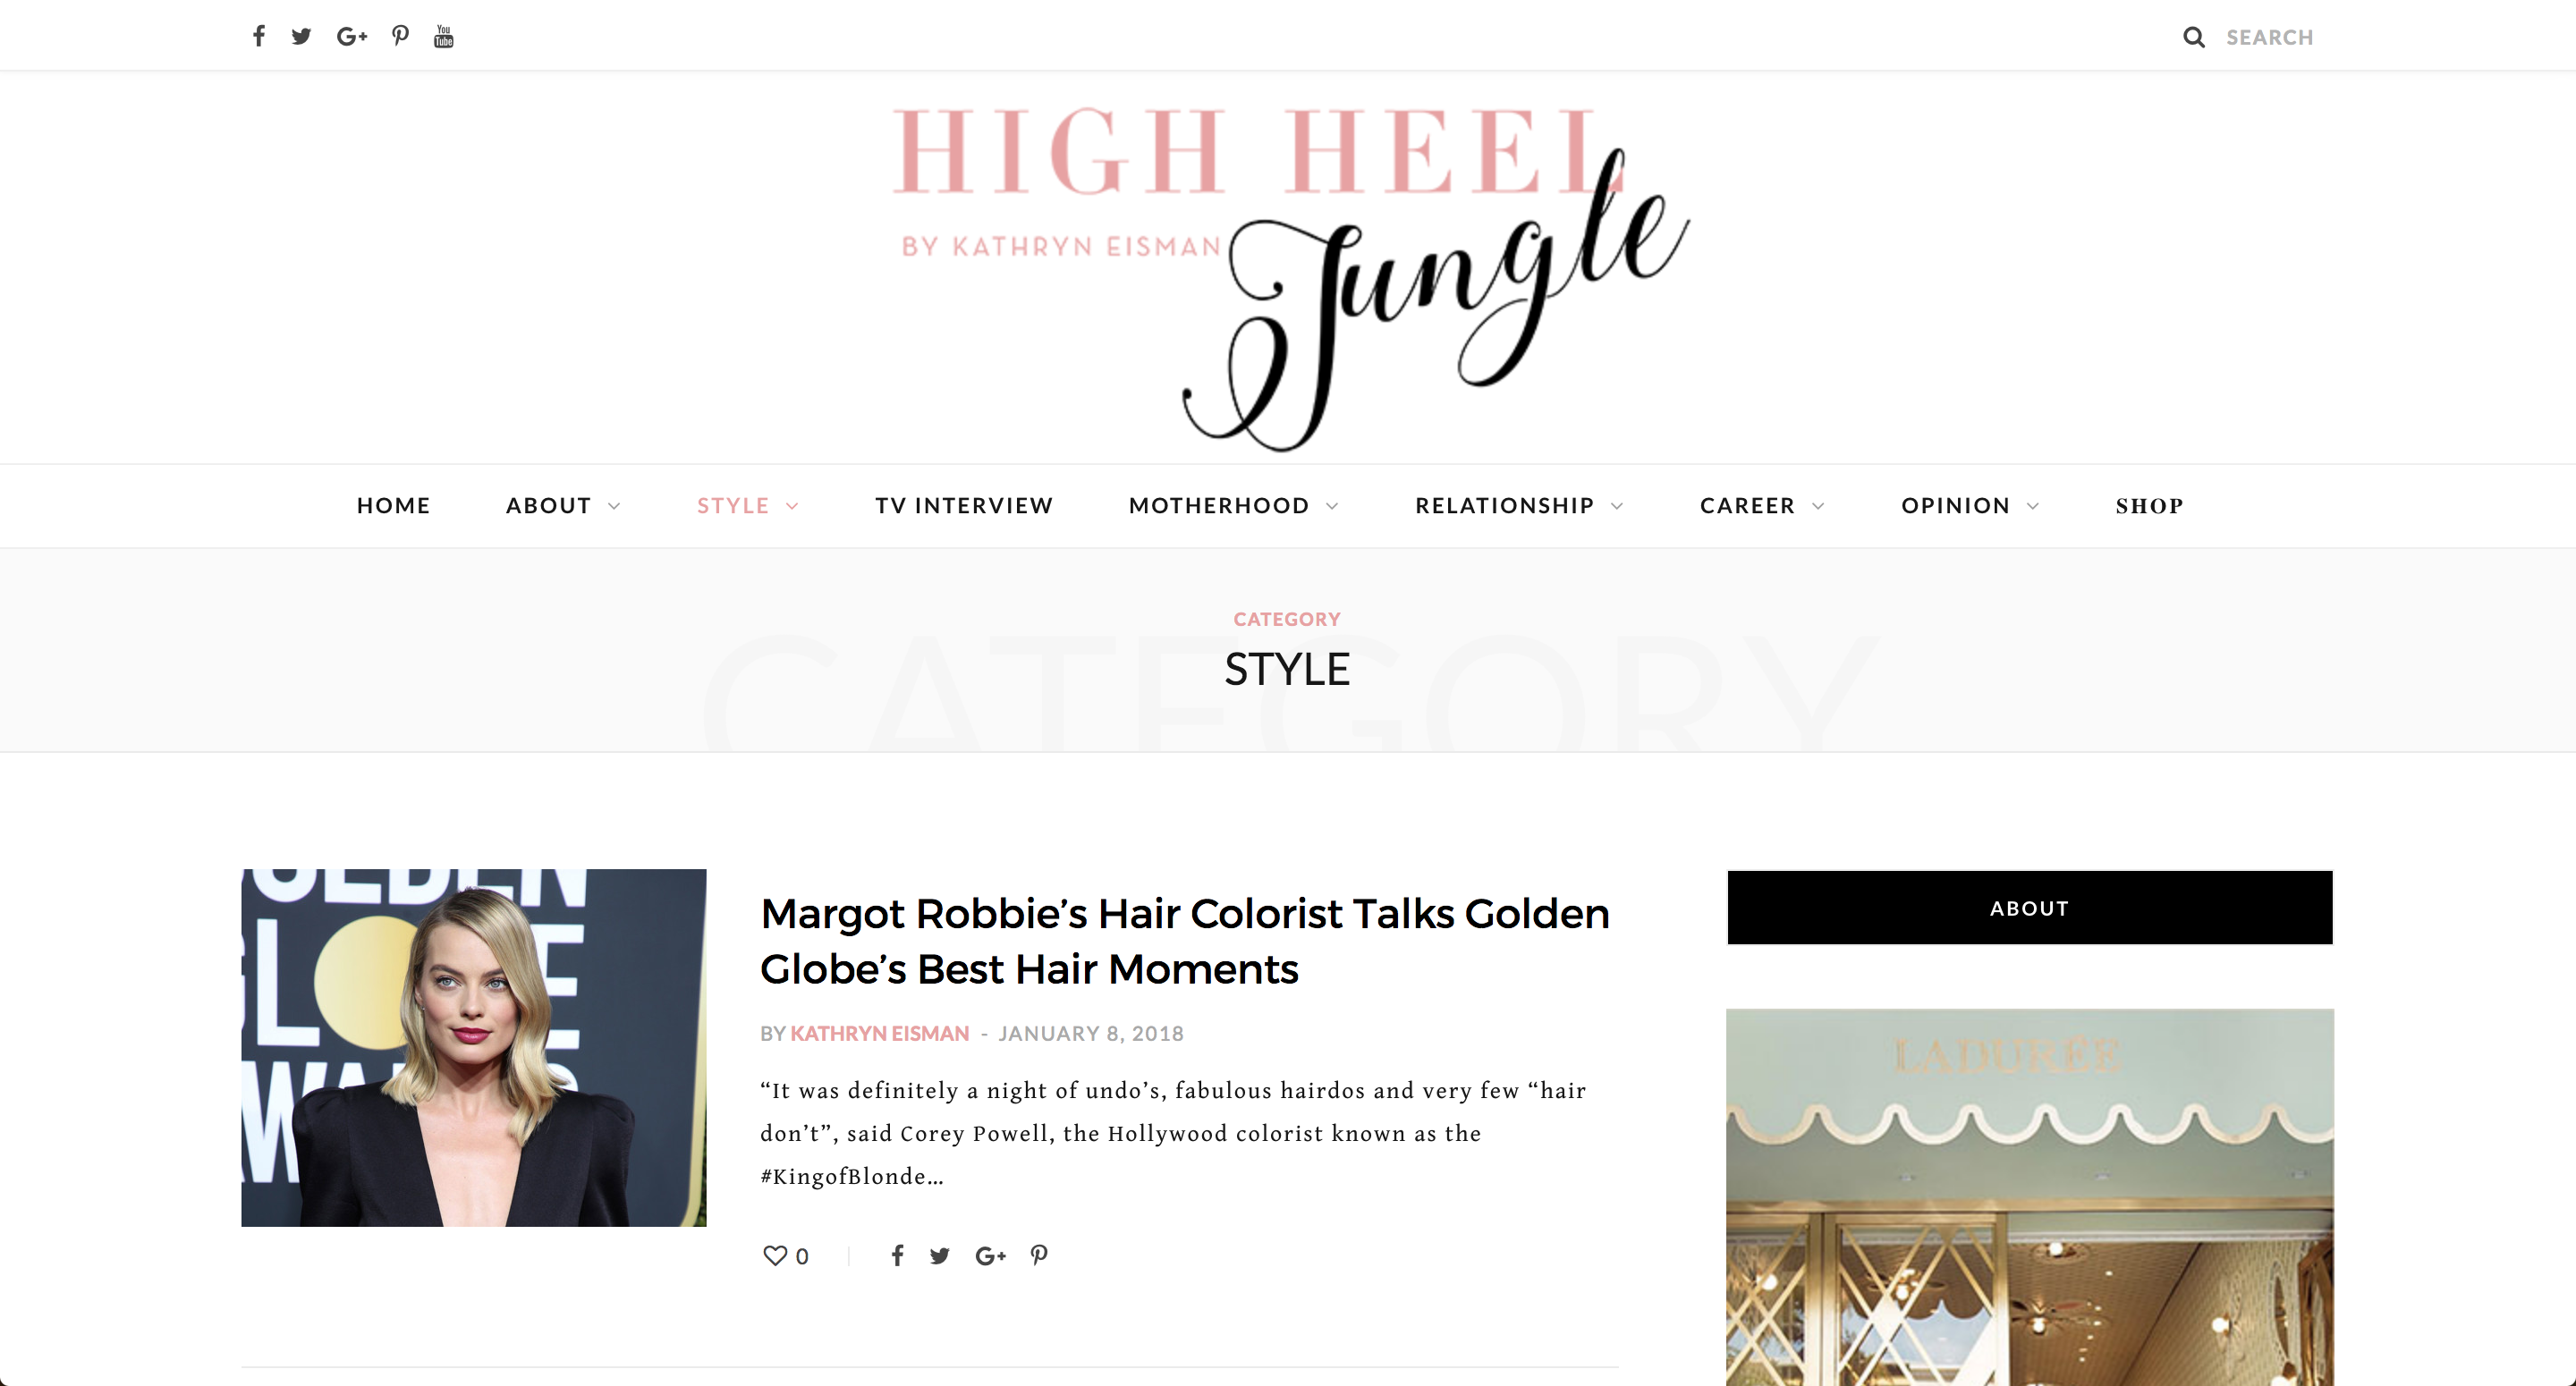 coreypowell_goldenglobes_highheeljungle